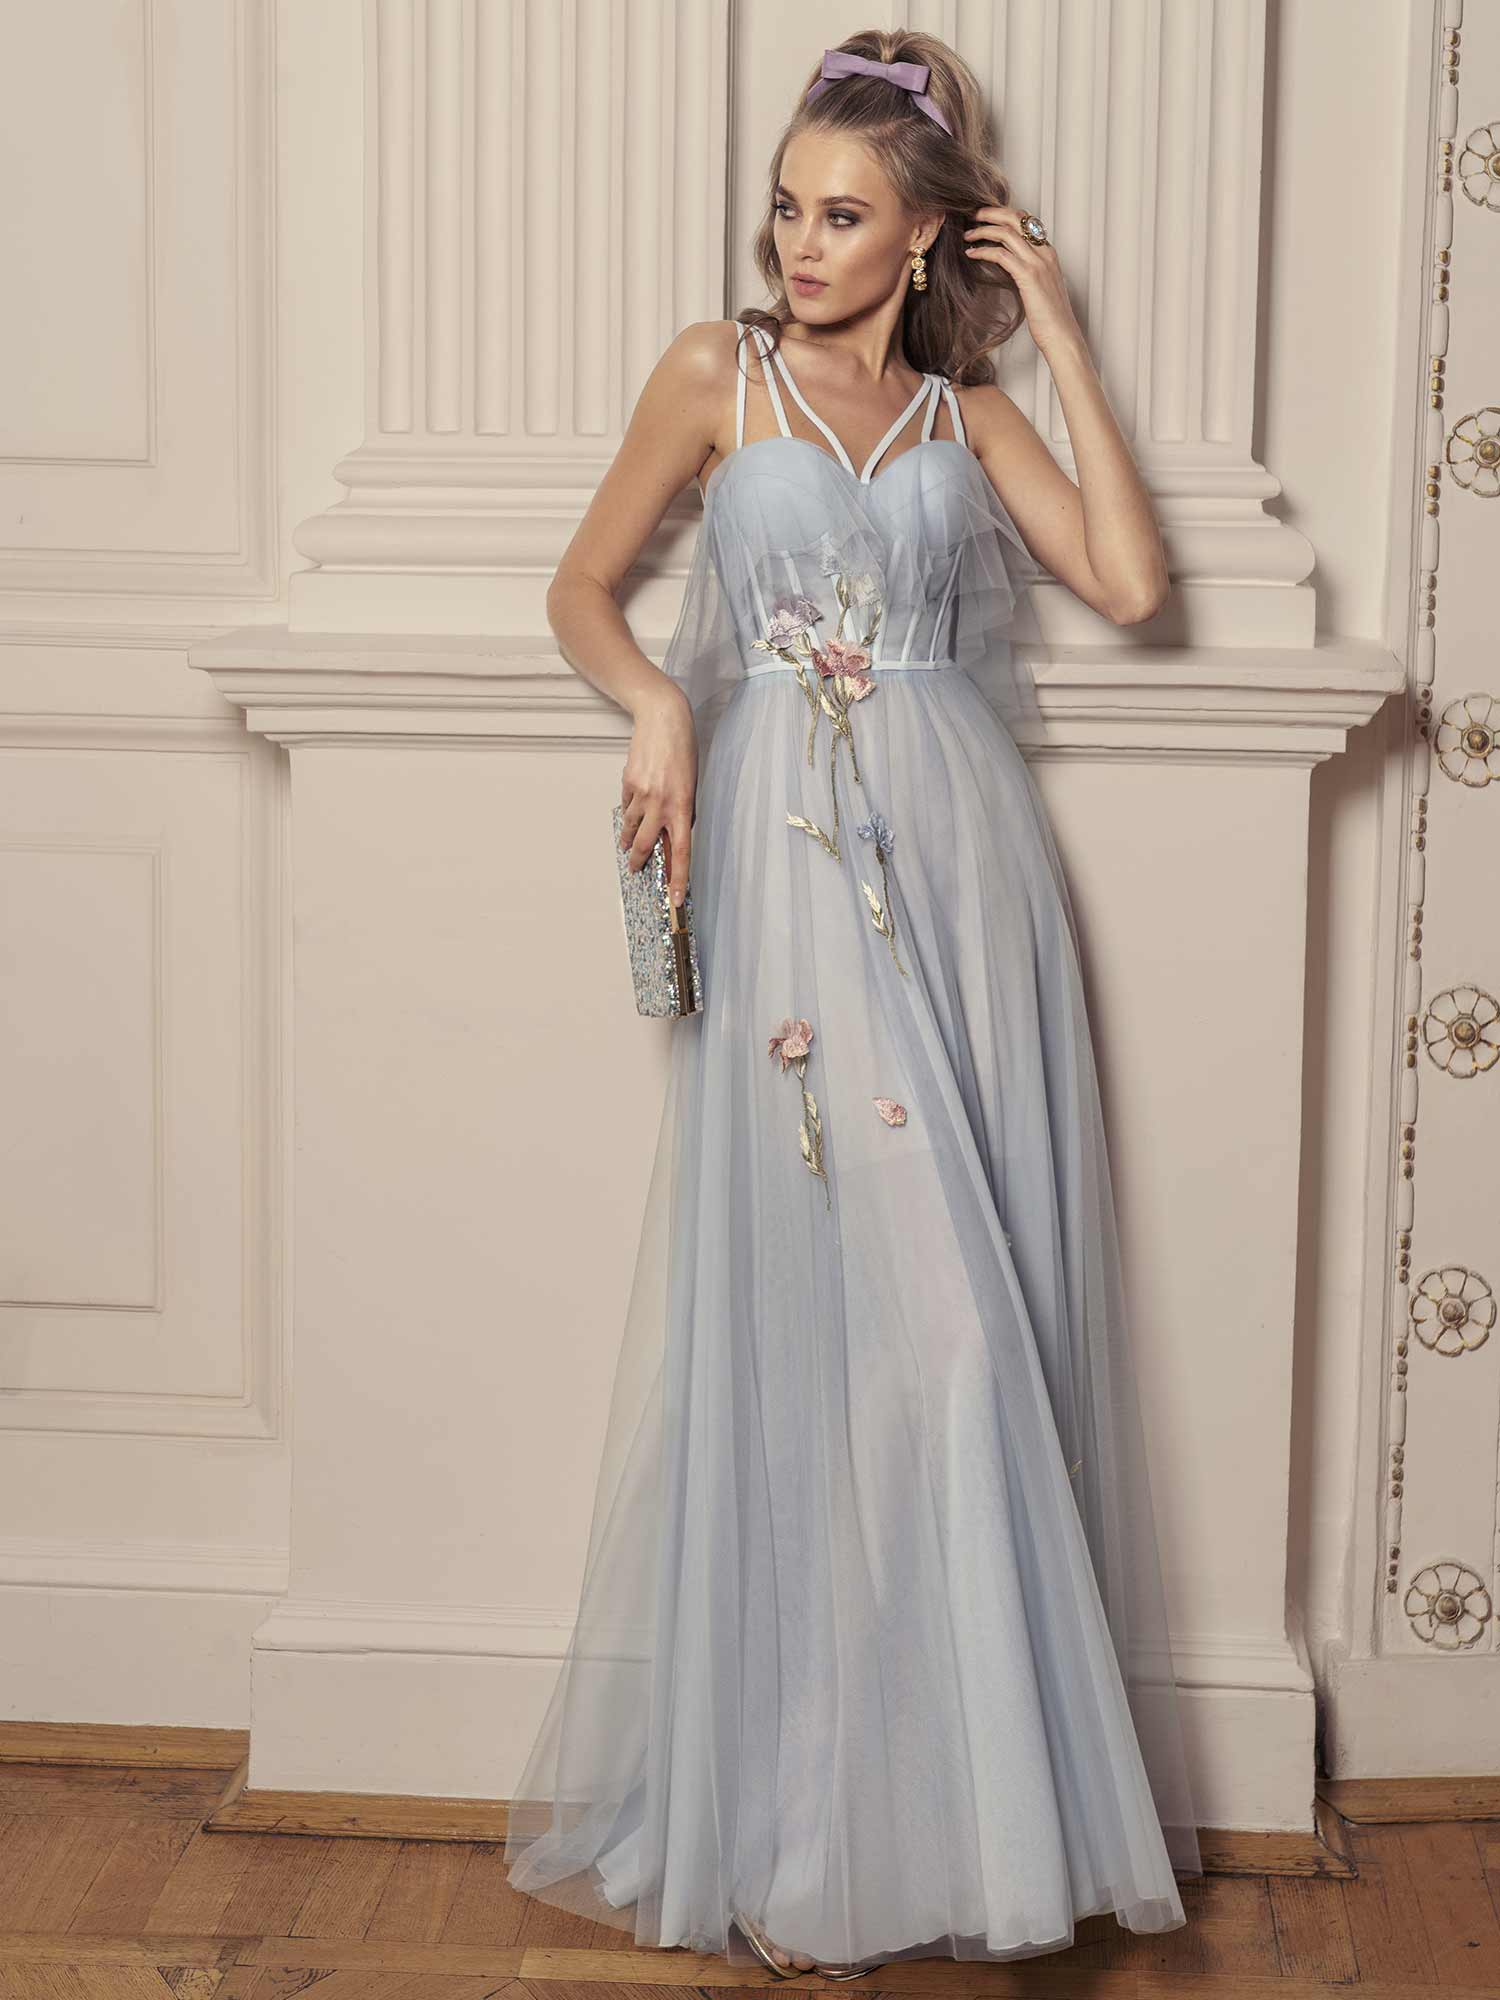 Style #516, maxi dress with bustier bodice and floral embroidery, available in ivory, black, powder, lilac, cherry, grey-light-blue (smoke blue), grey-blue, pink